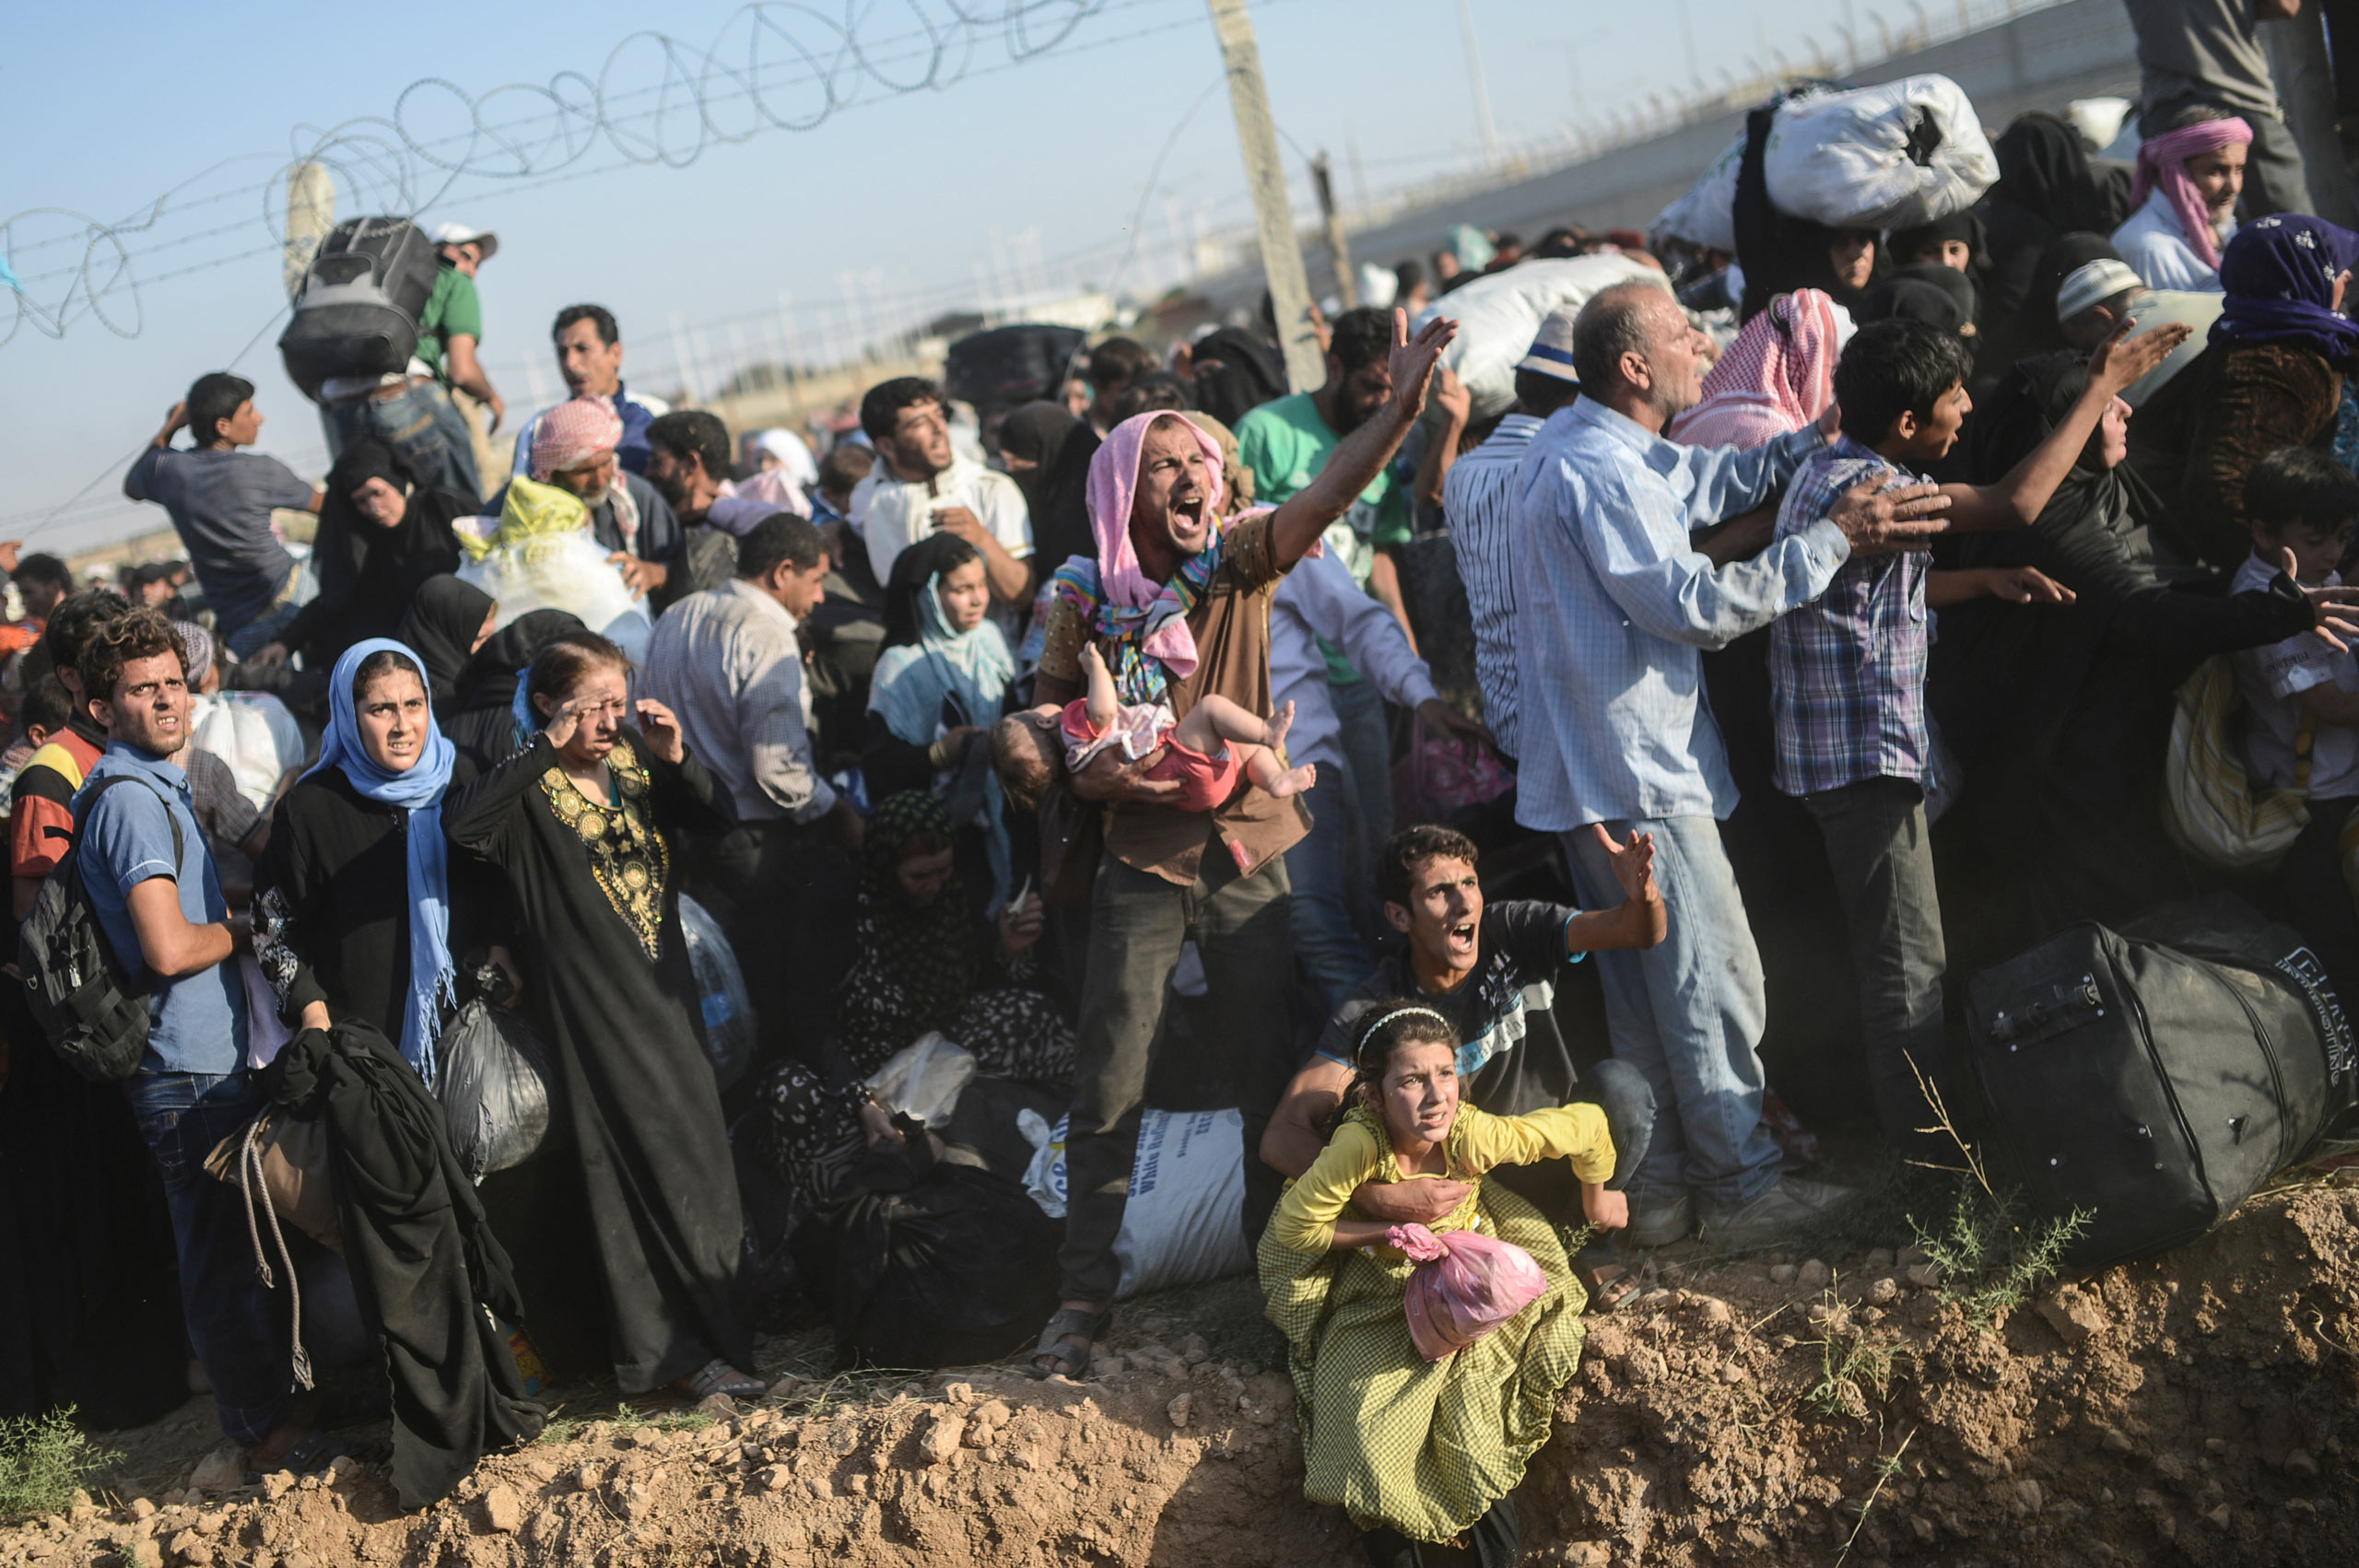 Syrians fleeing their war-torn country rush through the broken border fences, entering illegally the Turkish territory, near the Turkish crossing gate in Akçakale, in the Şanlıurfa province. June 14, 2015.